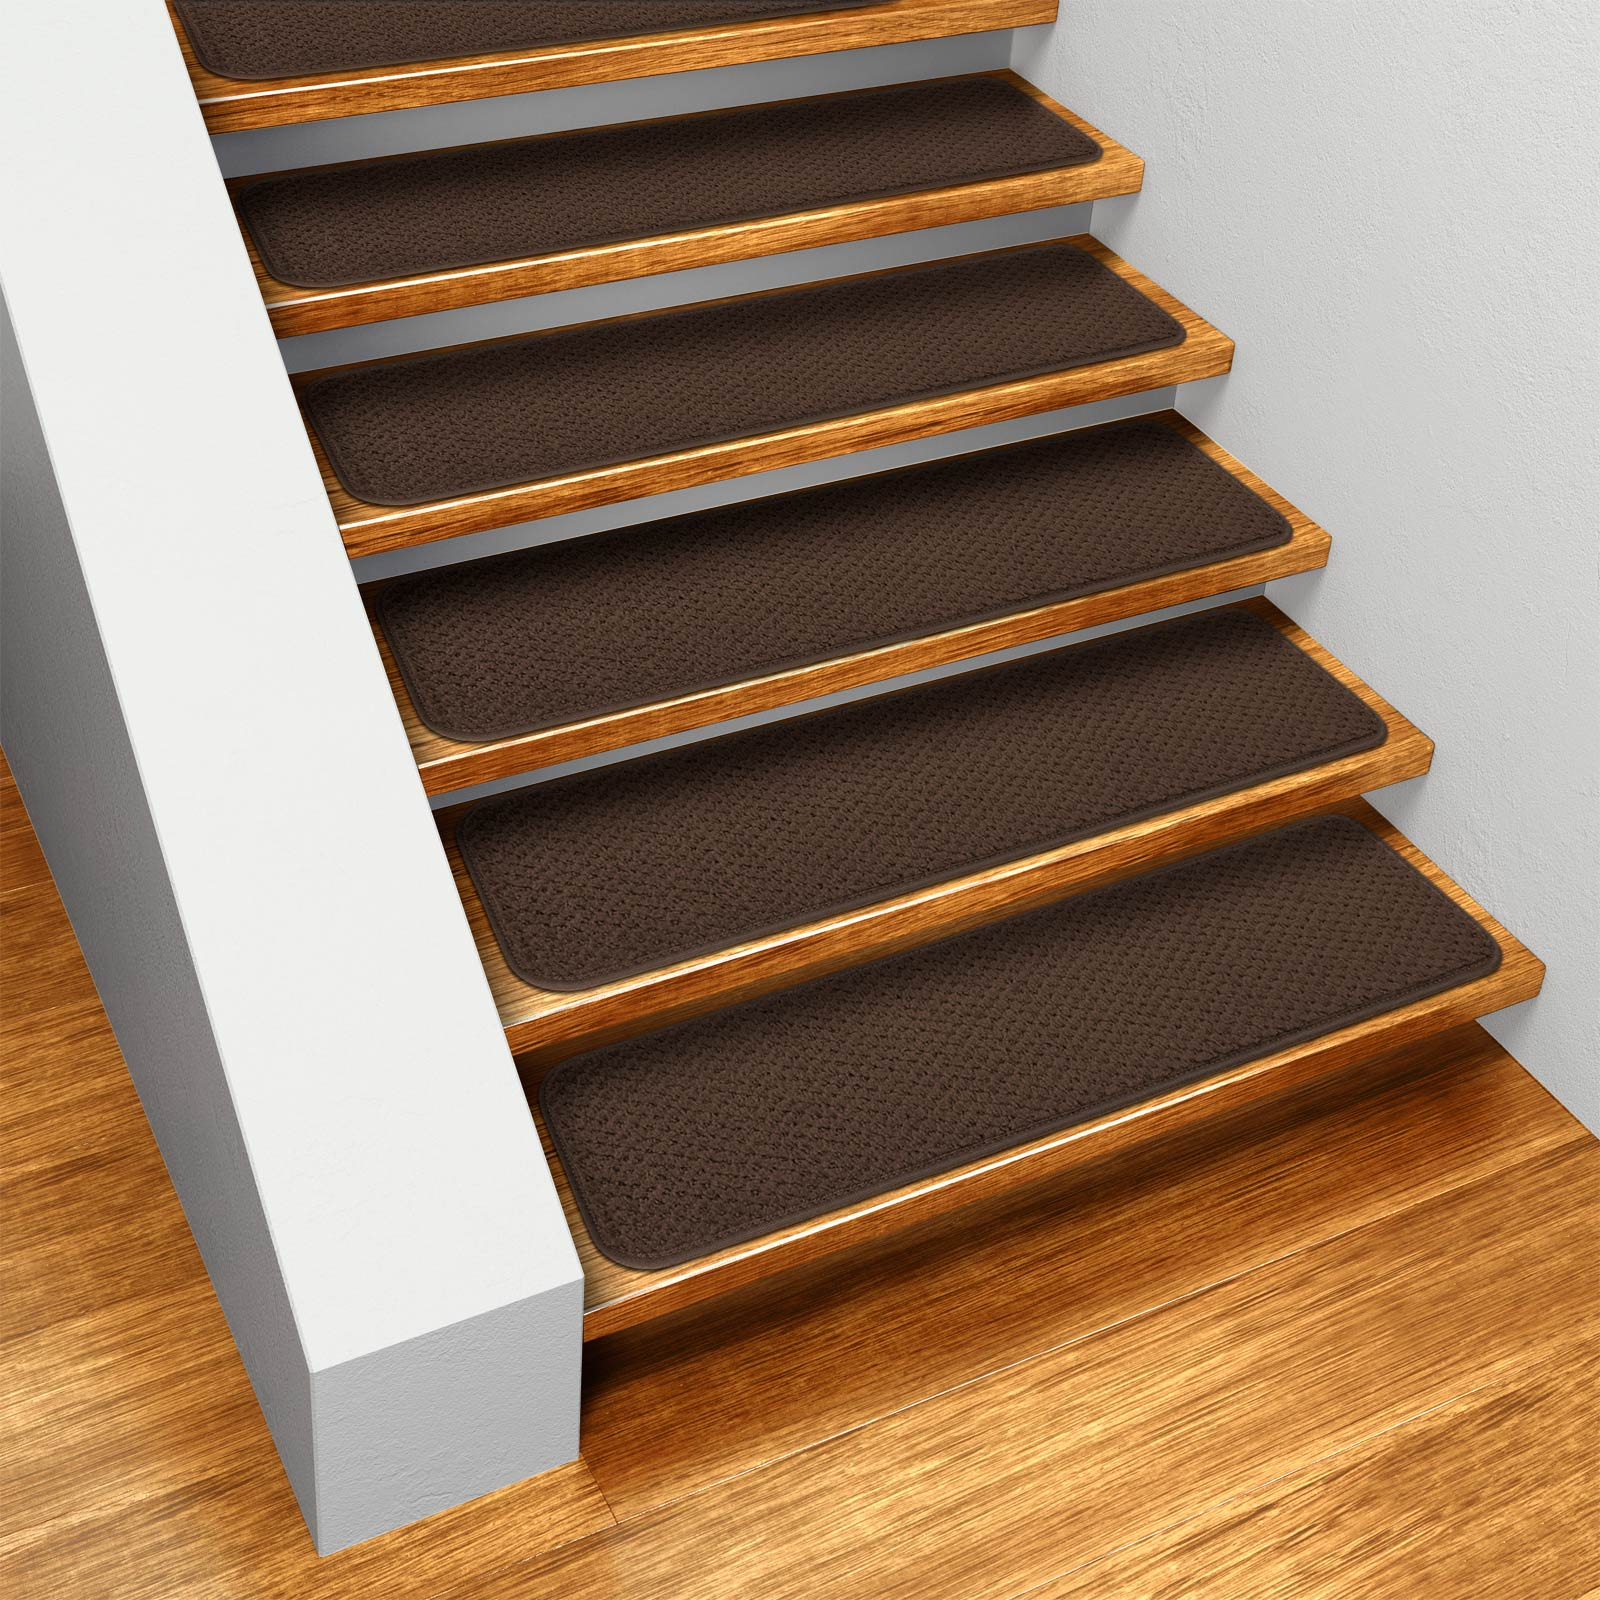 Set of 15 Skid-resistant Carpet Stair Treads - Chocolate Brown - 8 In. X 23.5 In. - Several Other Sizes to Choose From